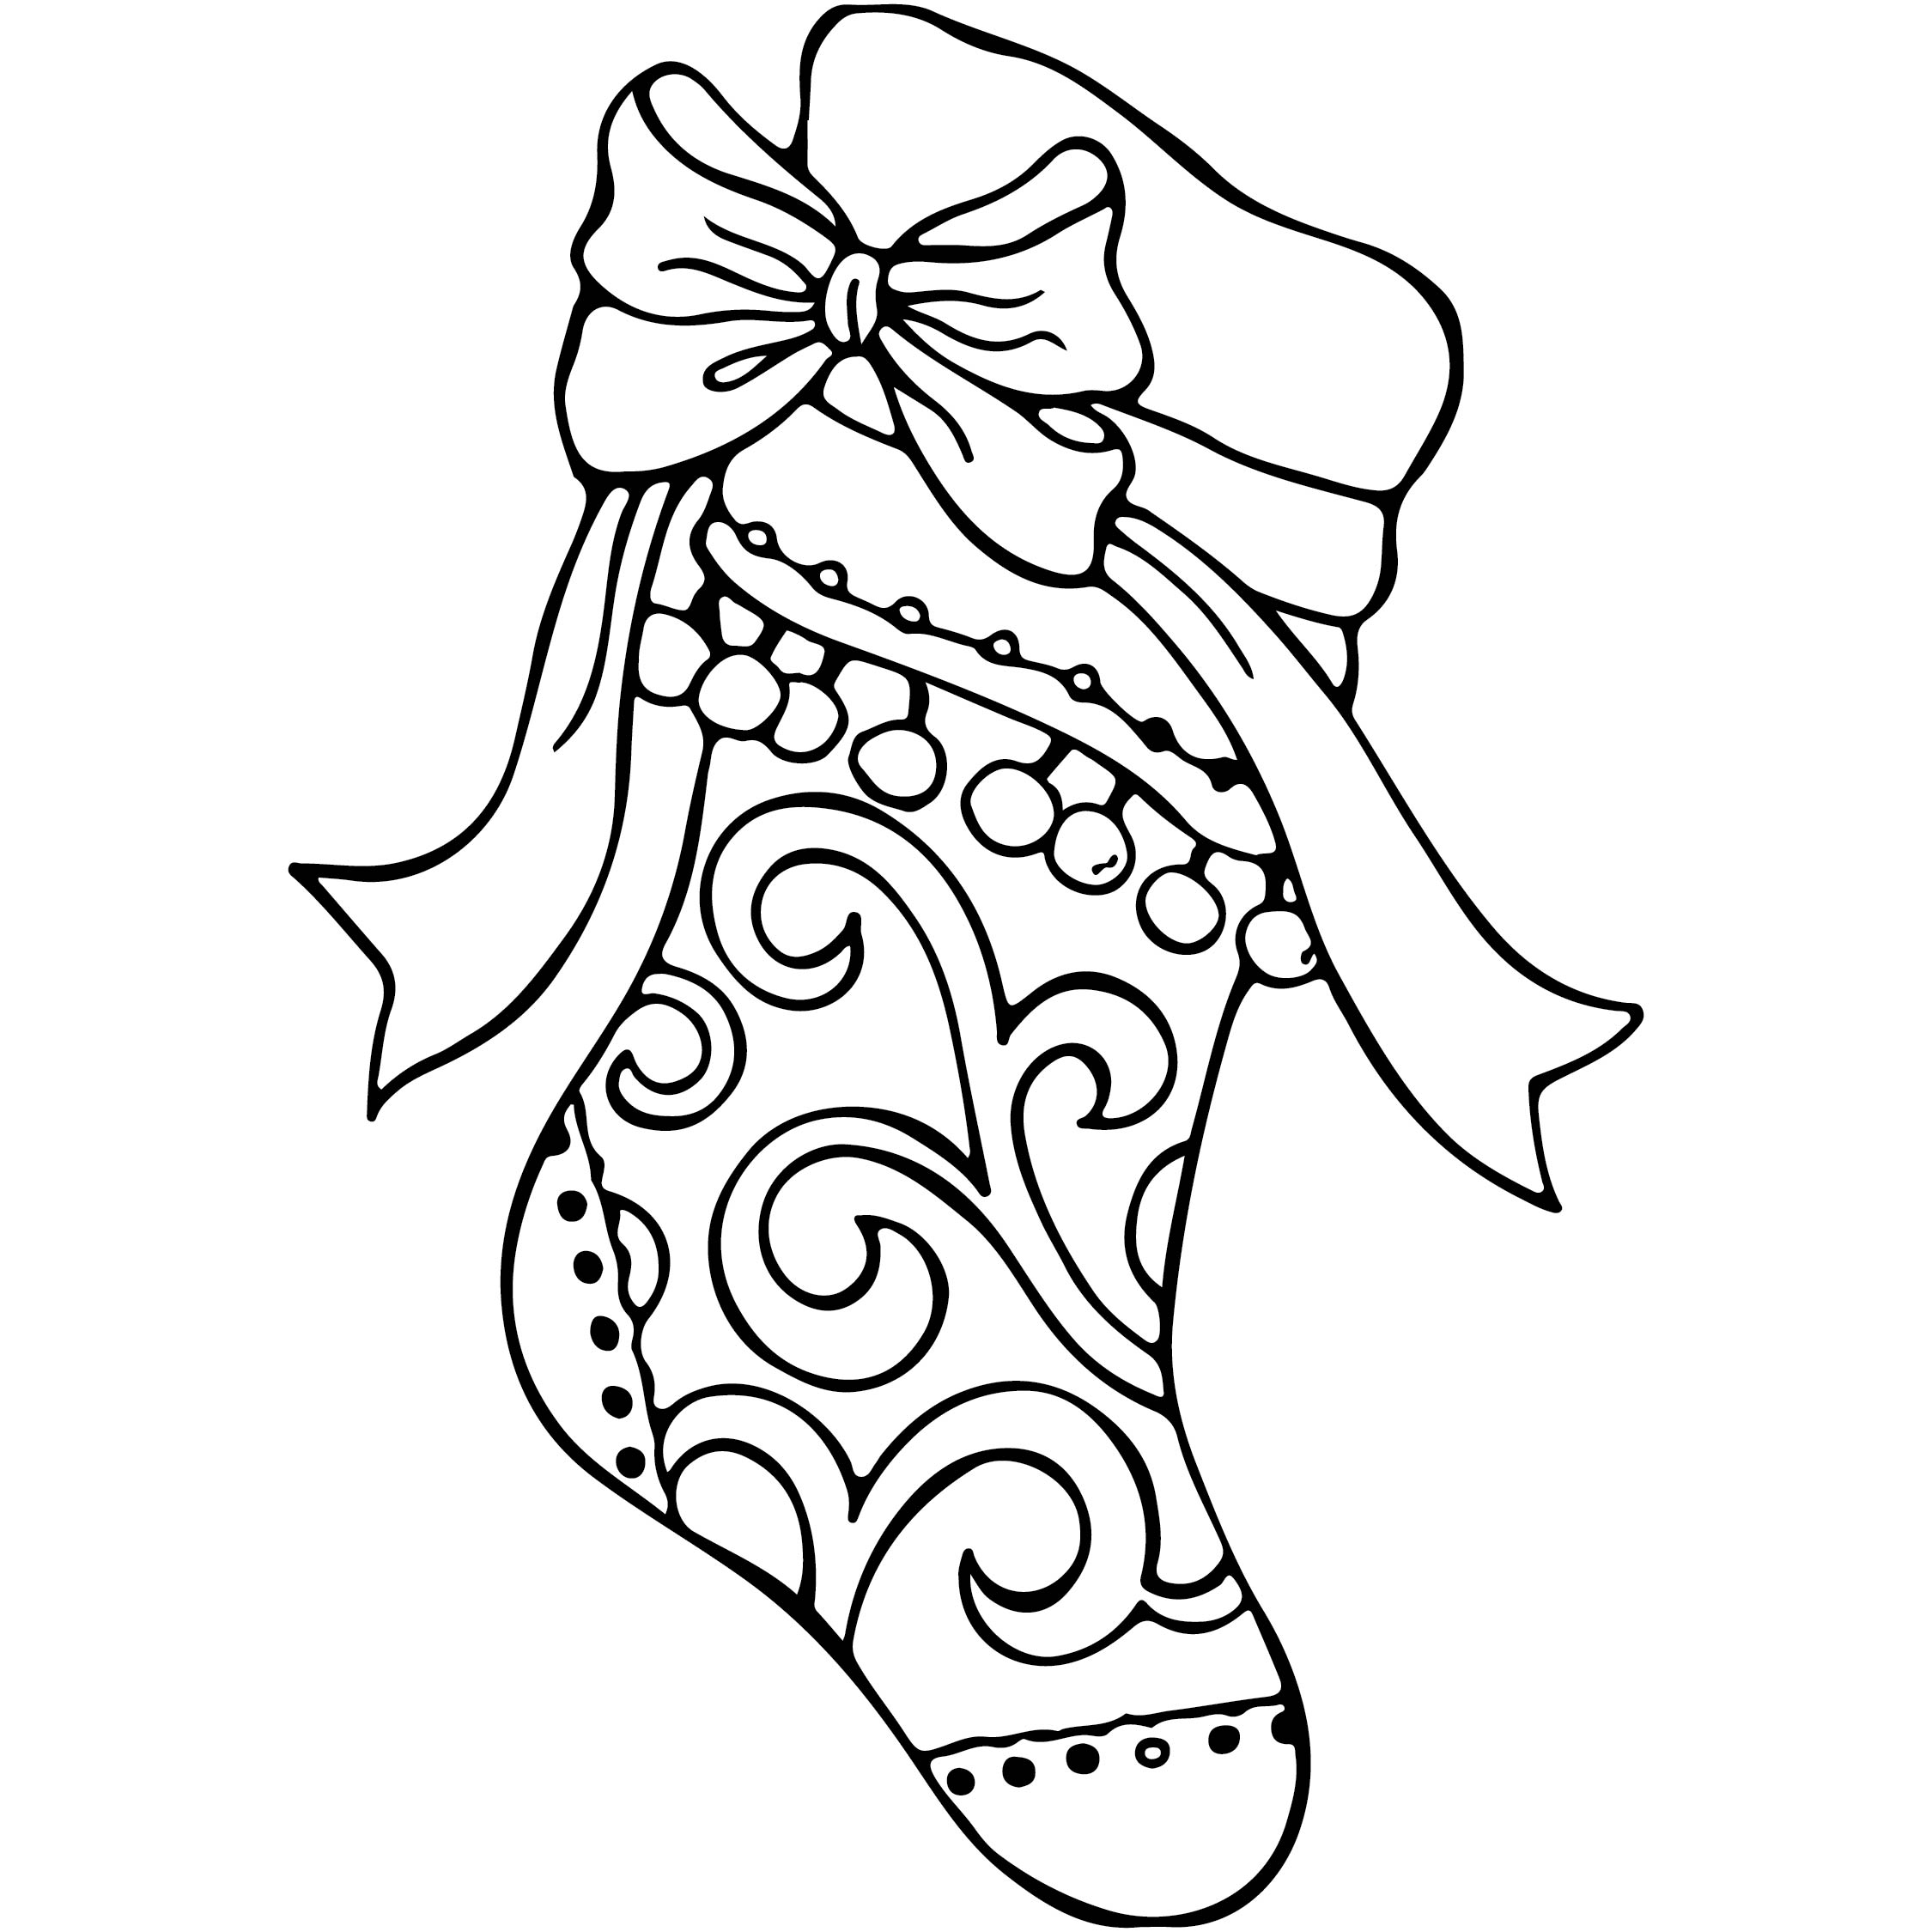 6 best images of christmas stocking coloring pages printable preschool printable christmas